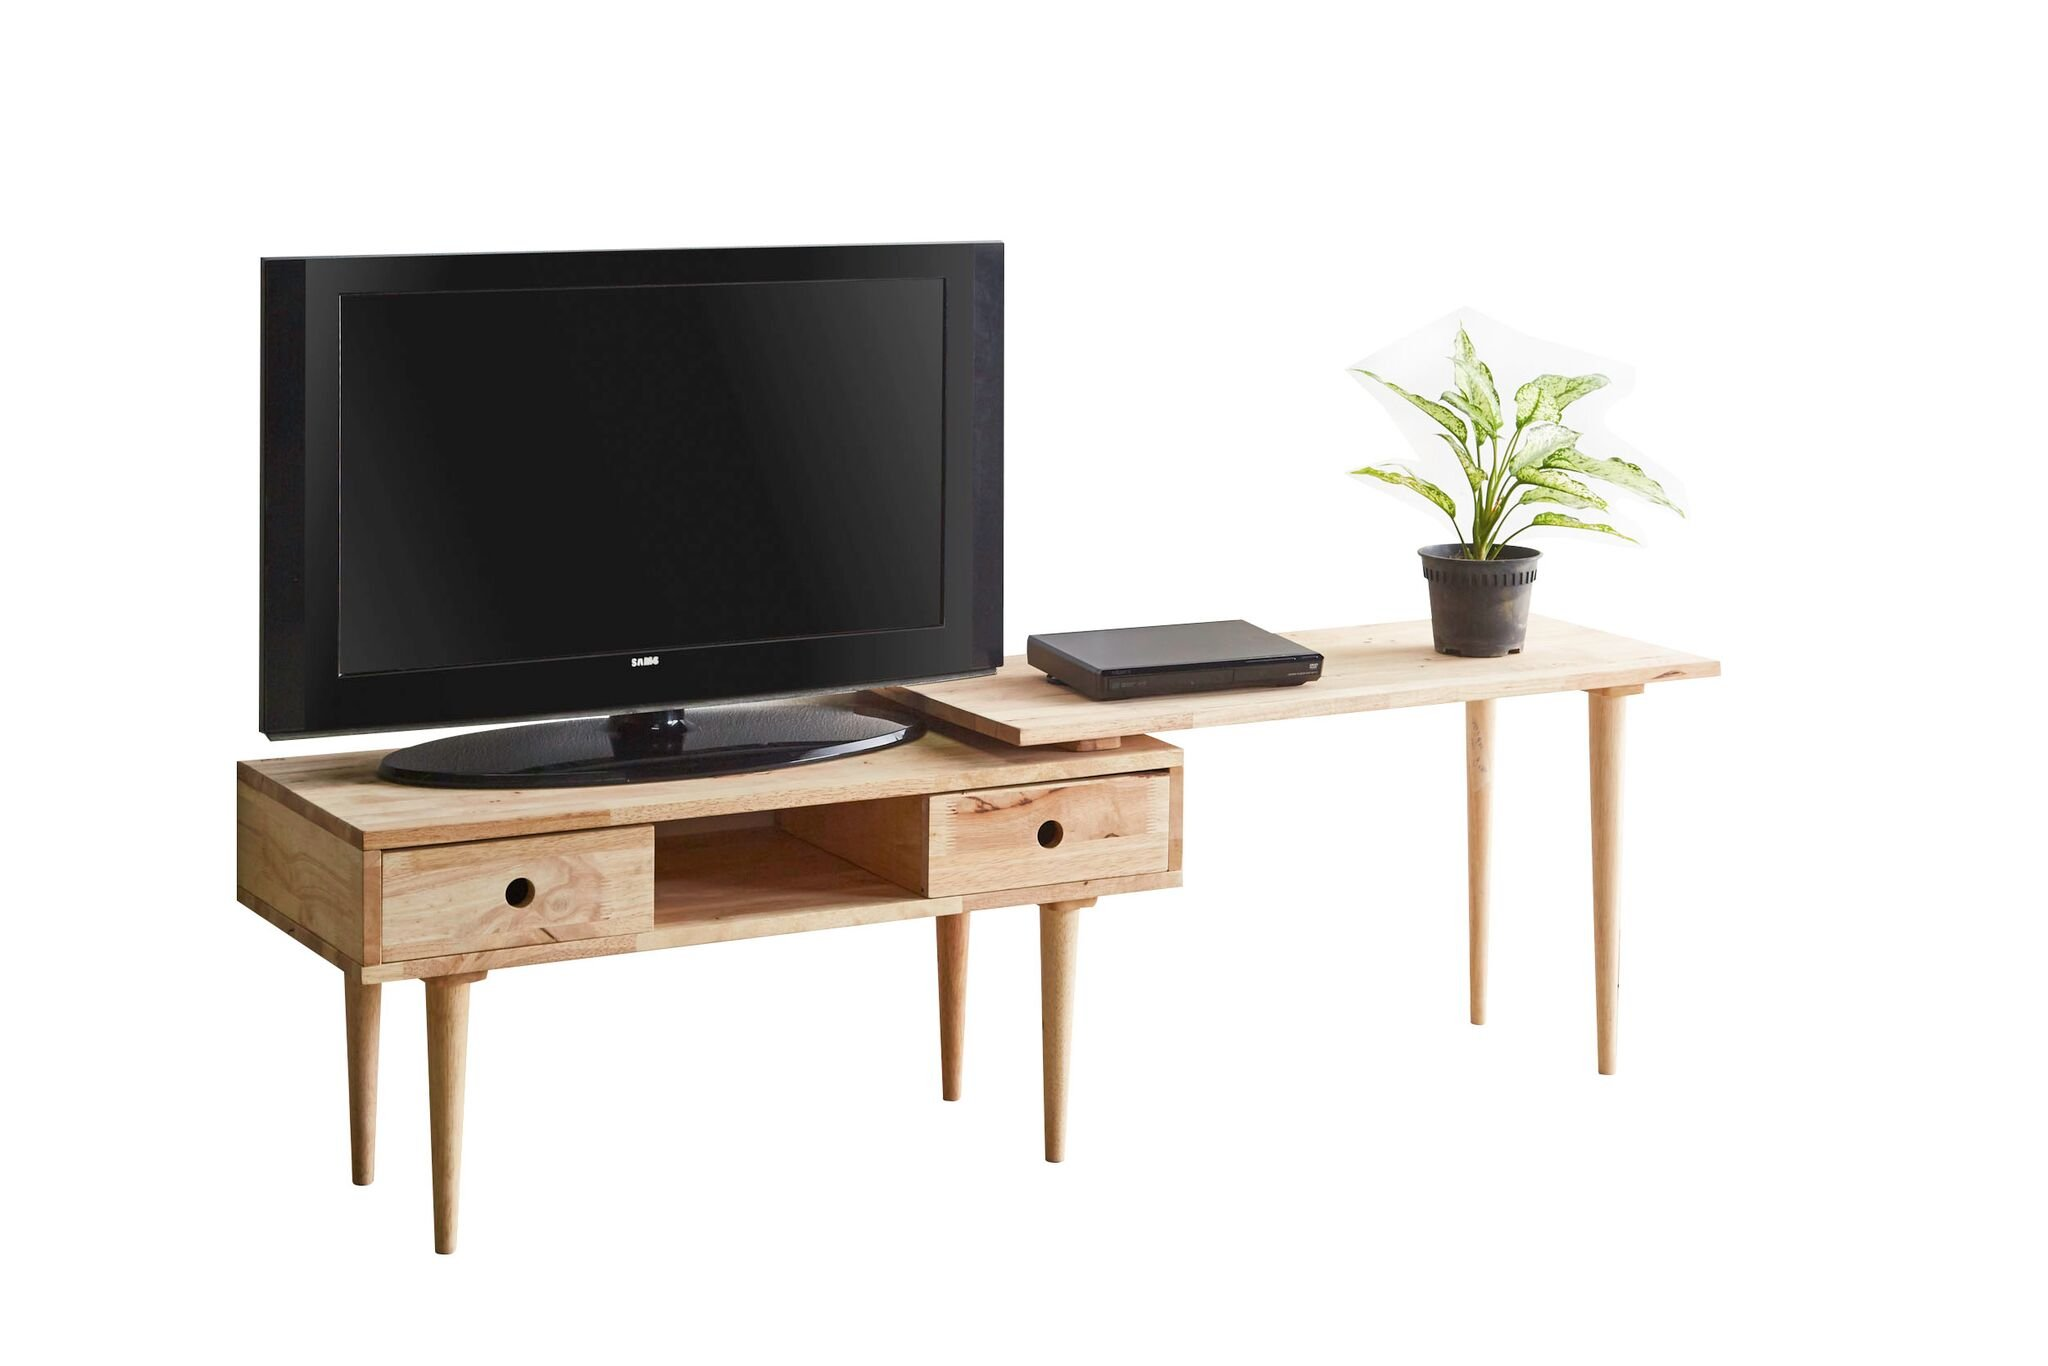 """Major-Q 35"""" Natural Wooden TV Stand/Coffee Table with Extension - Major-Q is a registered furniture trademark brand. Please search Major-Q for more high quality furniture related products All Major-Q products will be covered with limited Major-Q . Please buy with Confidence. Tv stand W/extension Top, 35"""" X 16"""" X 19""""H - tv-stands, living-room-furniture, living-room - 61xpej8UntL -"""